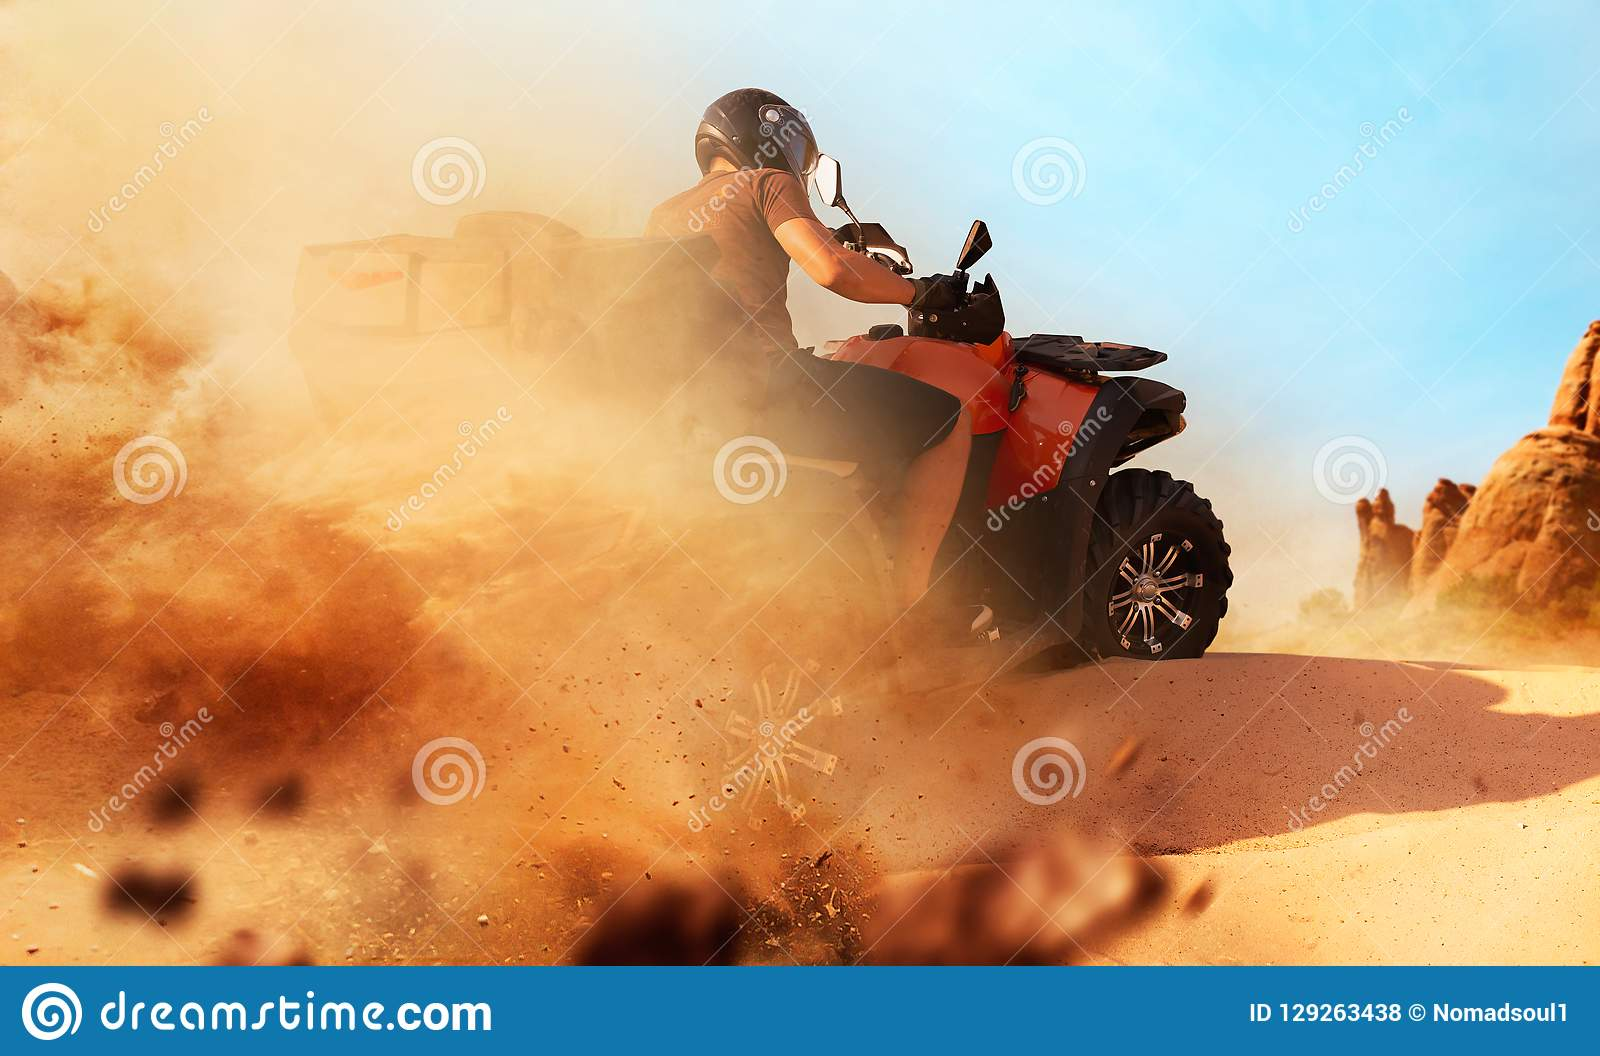 Atv riding in sand quarry, dust clouds, quad bike